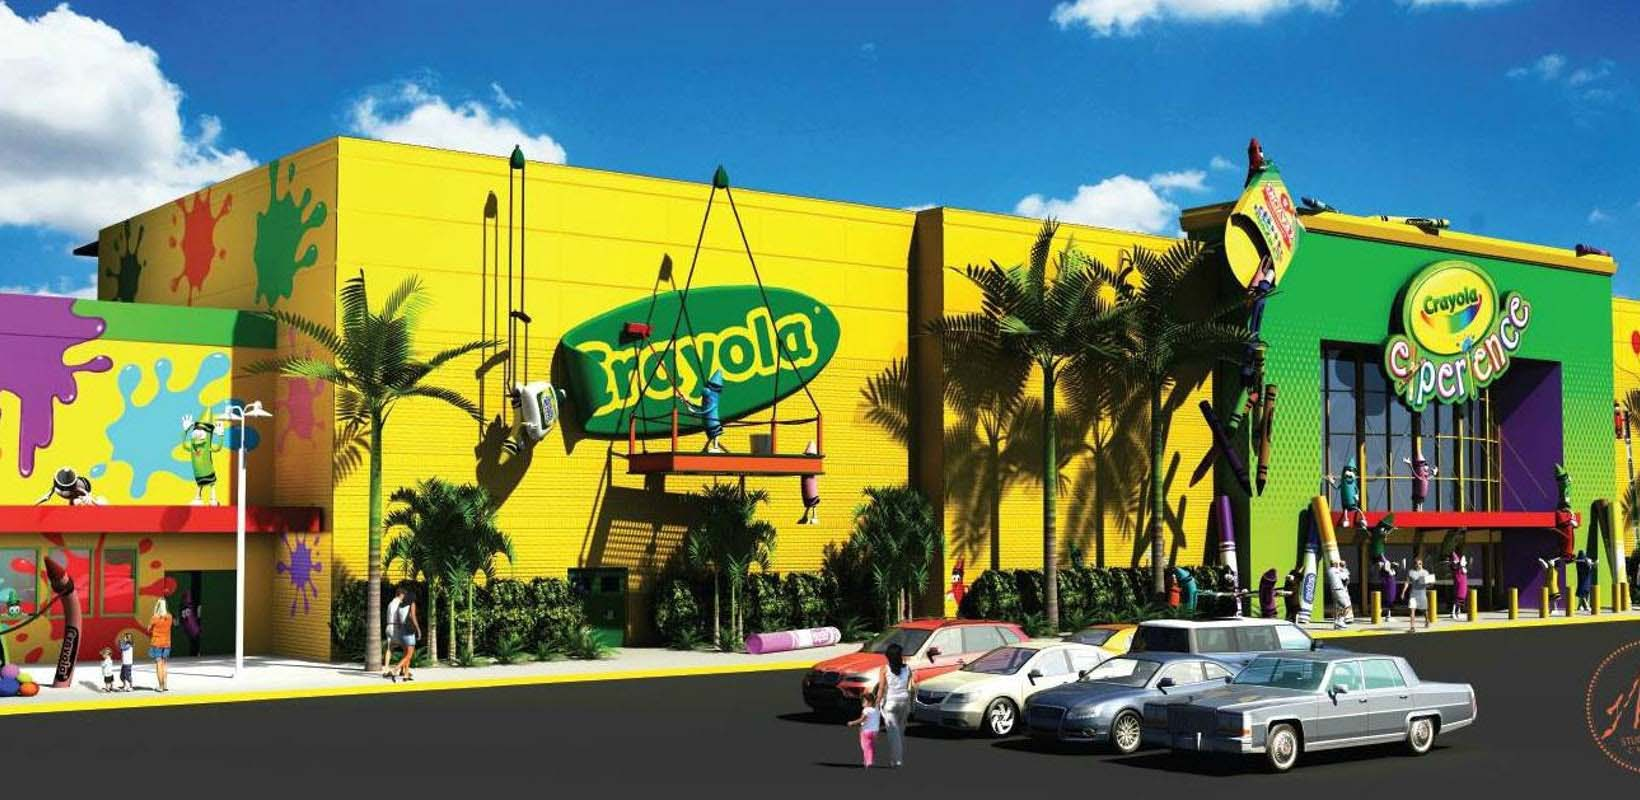 Tickets to the Crayola Experience Orlando